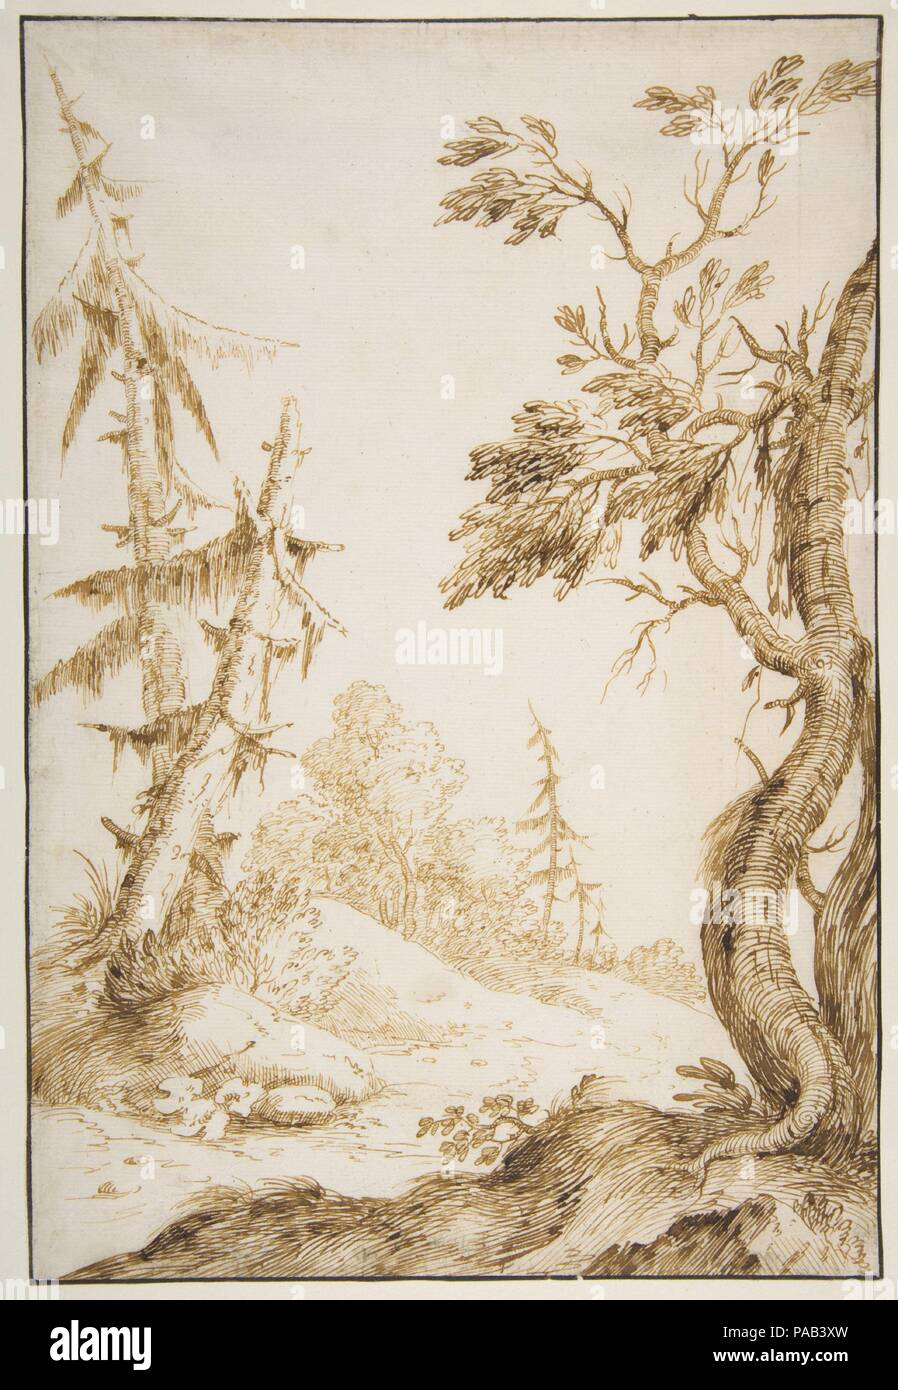 Clearing in a Wooded Landscape. Artist: Marco Ricci (Italian, Belluno 1676-1730 Venice (?)). Dimensions: 11 1/2 x 7 13/16in. (29.2 x 19.8cm). Date: 1676-1730. Museum: Metropolitan Museum of Art, New York, USA. - Stock Image